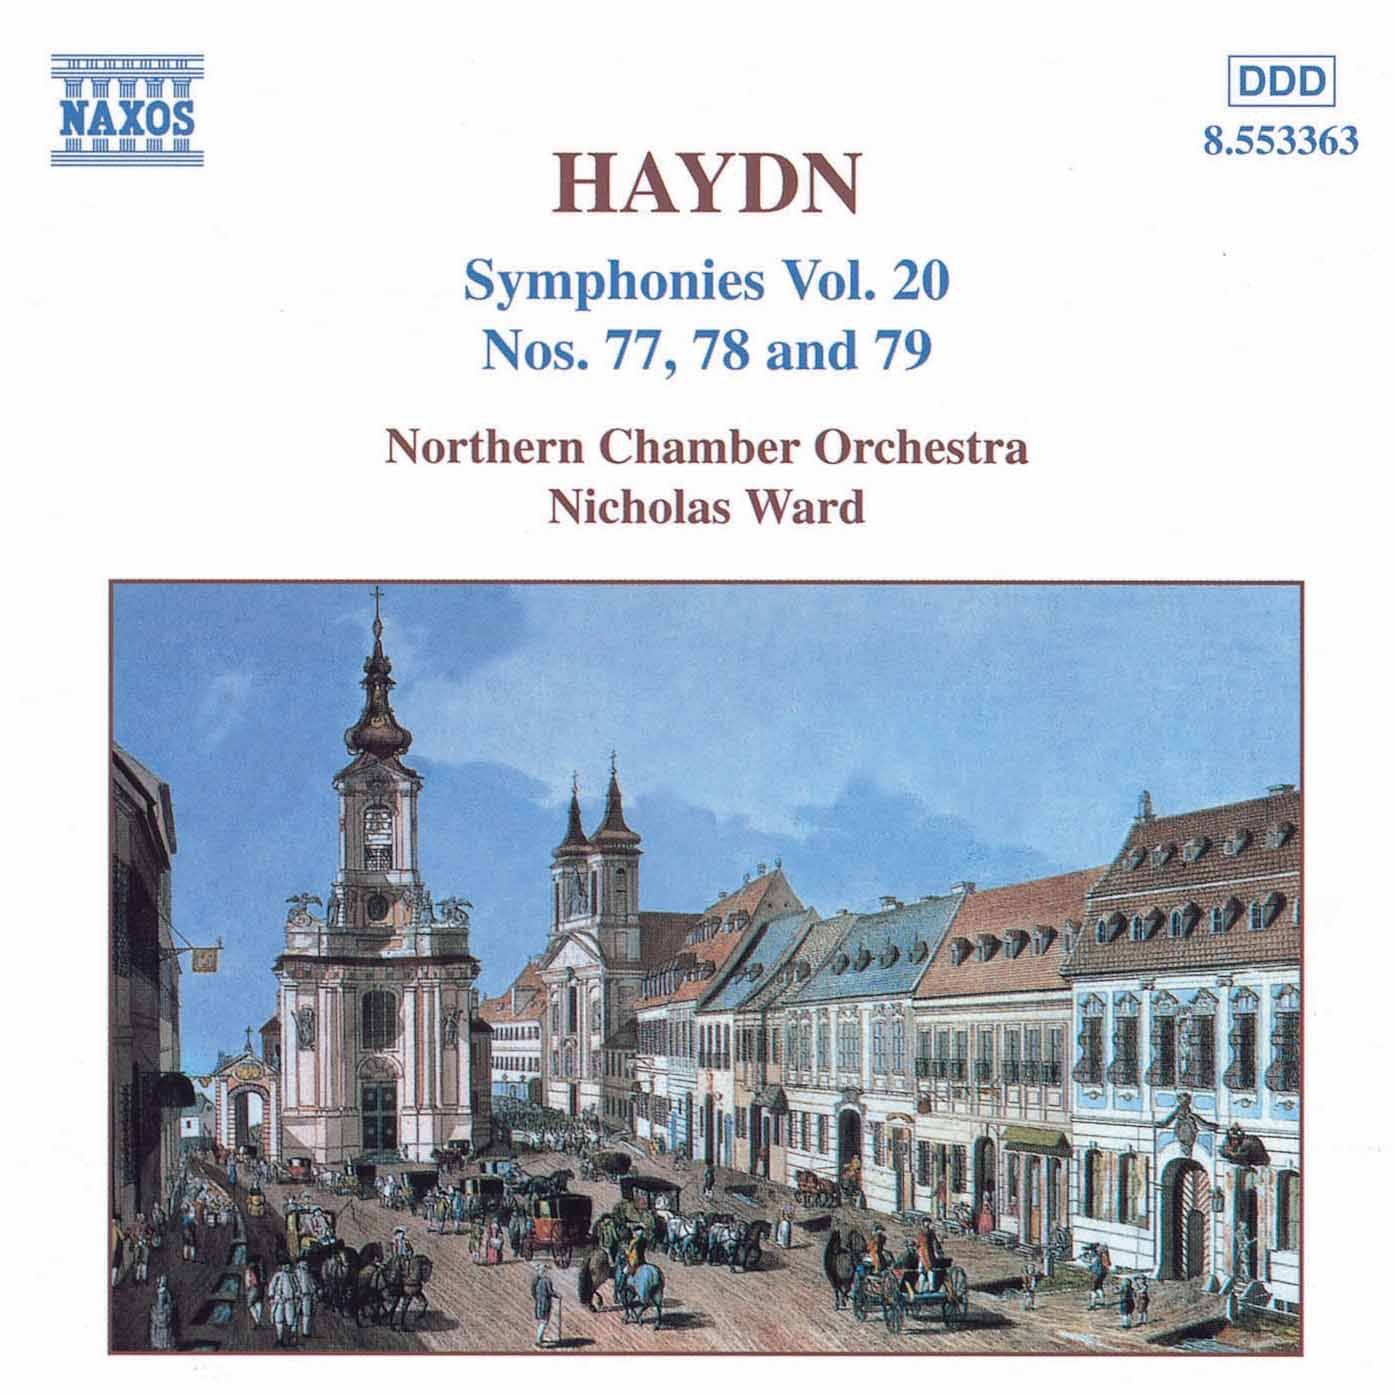 Symphony No. 79 in F Major, Hob. I:79: Finale: Vivace